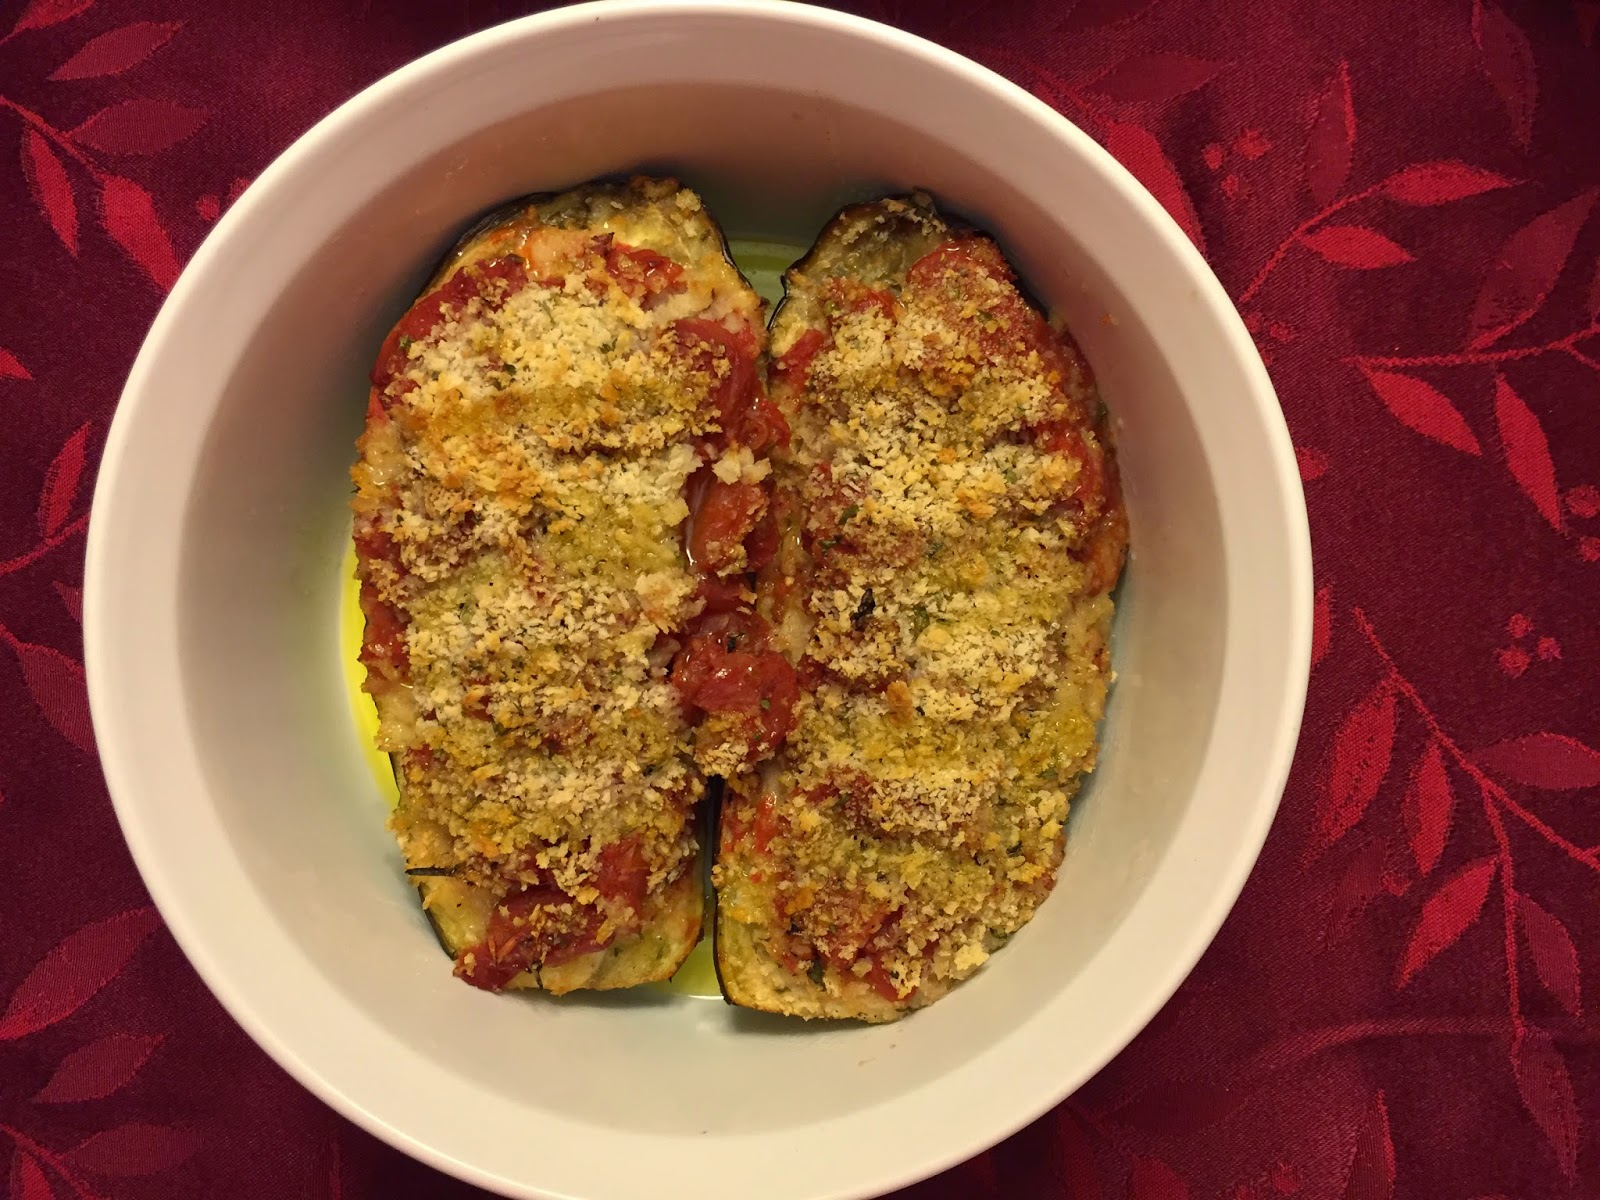 Baked eggplant from Puglia